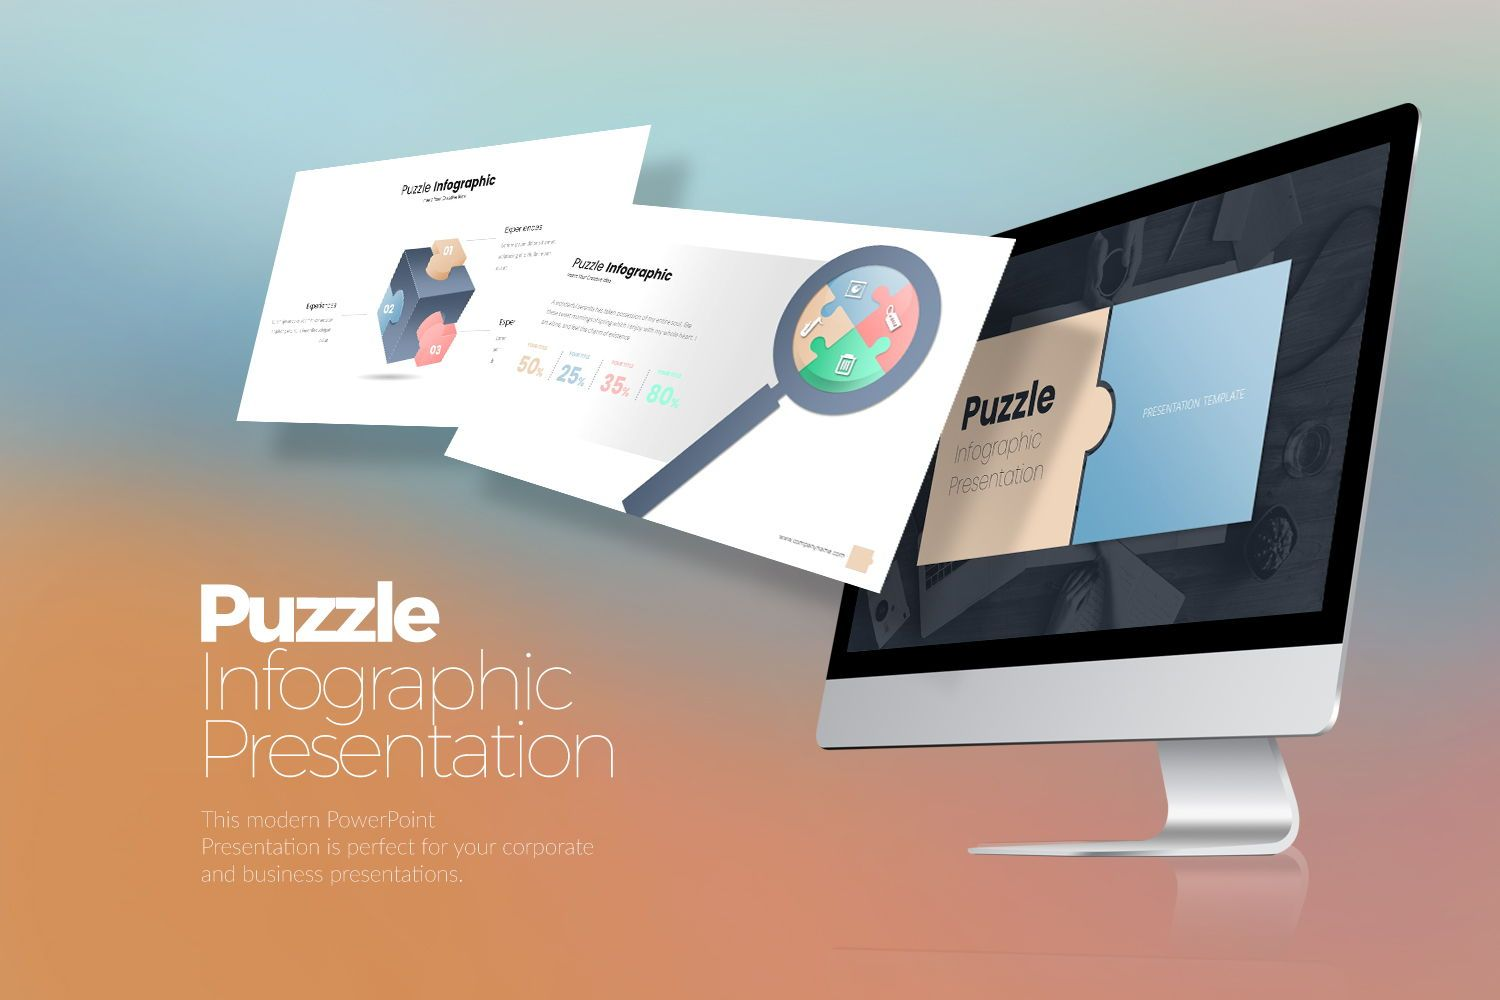 Puzzle Infographic Powerpoint, 08199, Business Models — PoweredTemplate.com